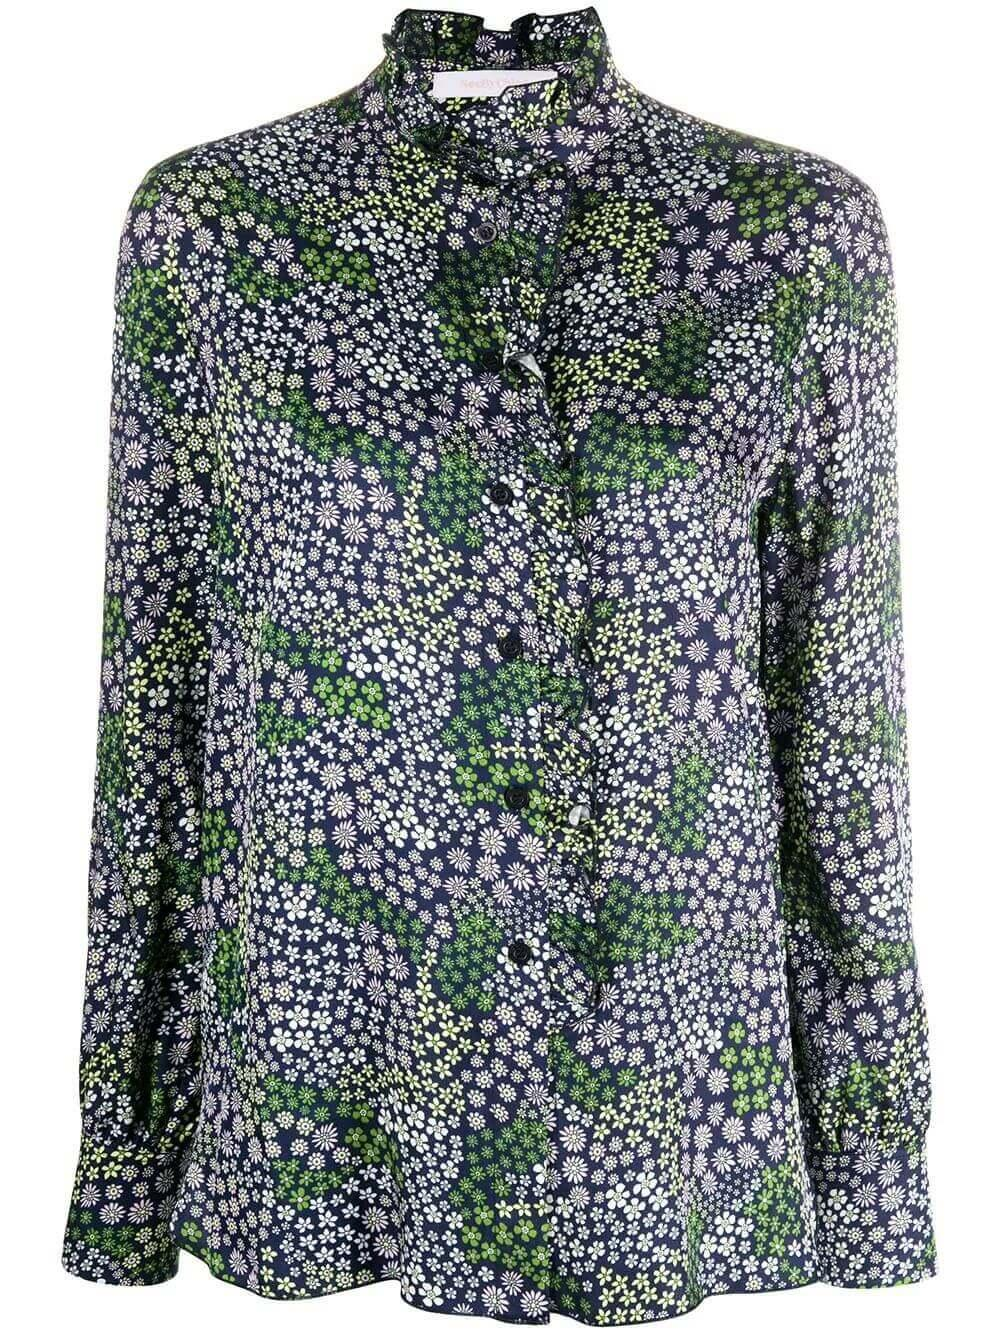 Long Sleeve Structured Floral Print Top Item # CHS20UHT23032